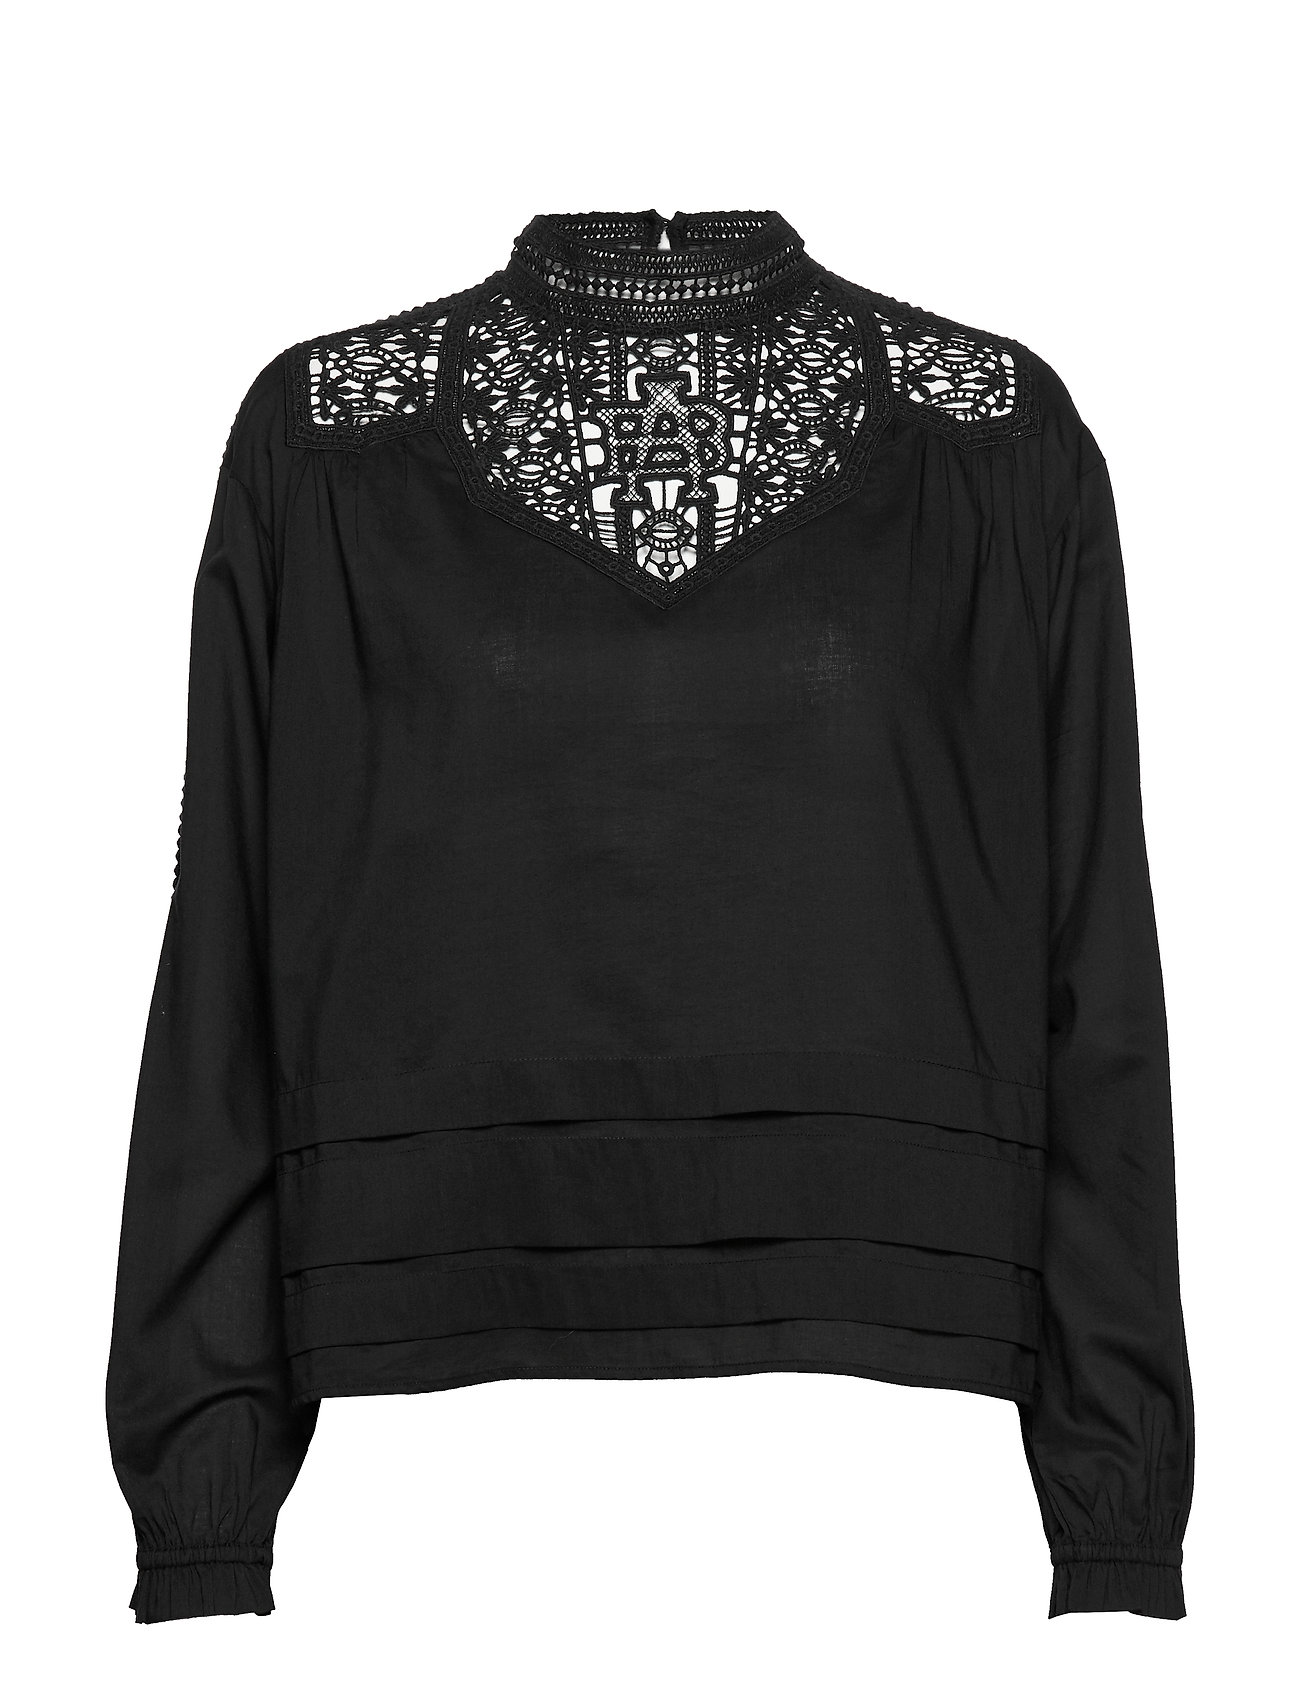 Scotch & Soda Feminine drapey top with special lace detailing - BLACK